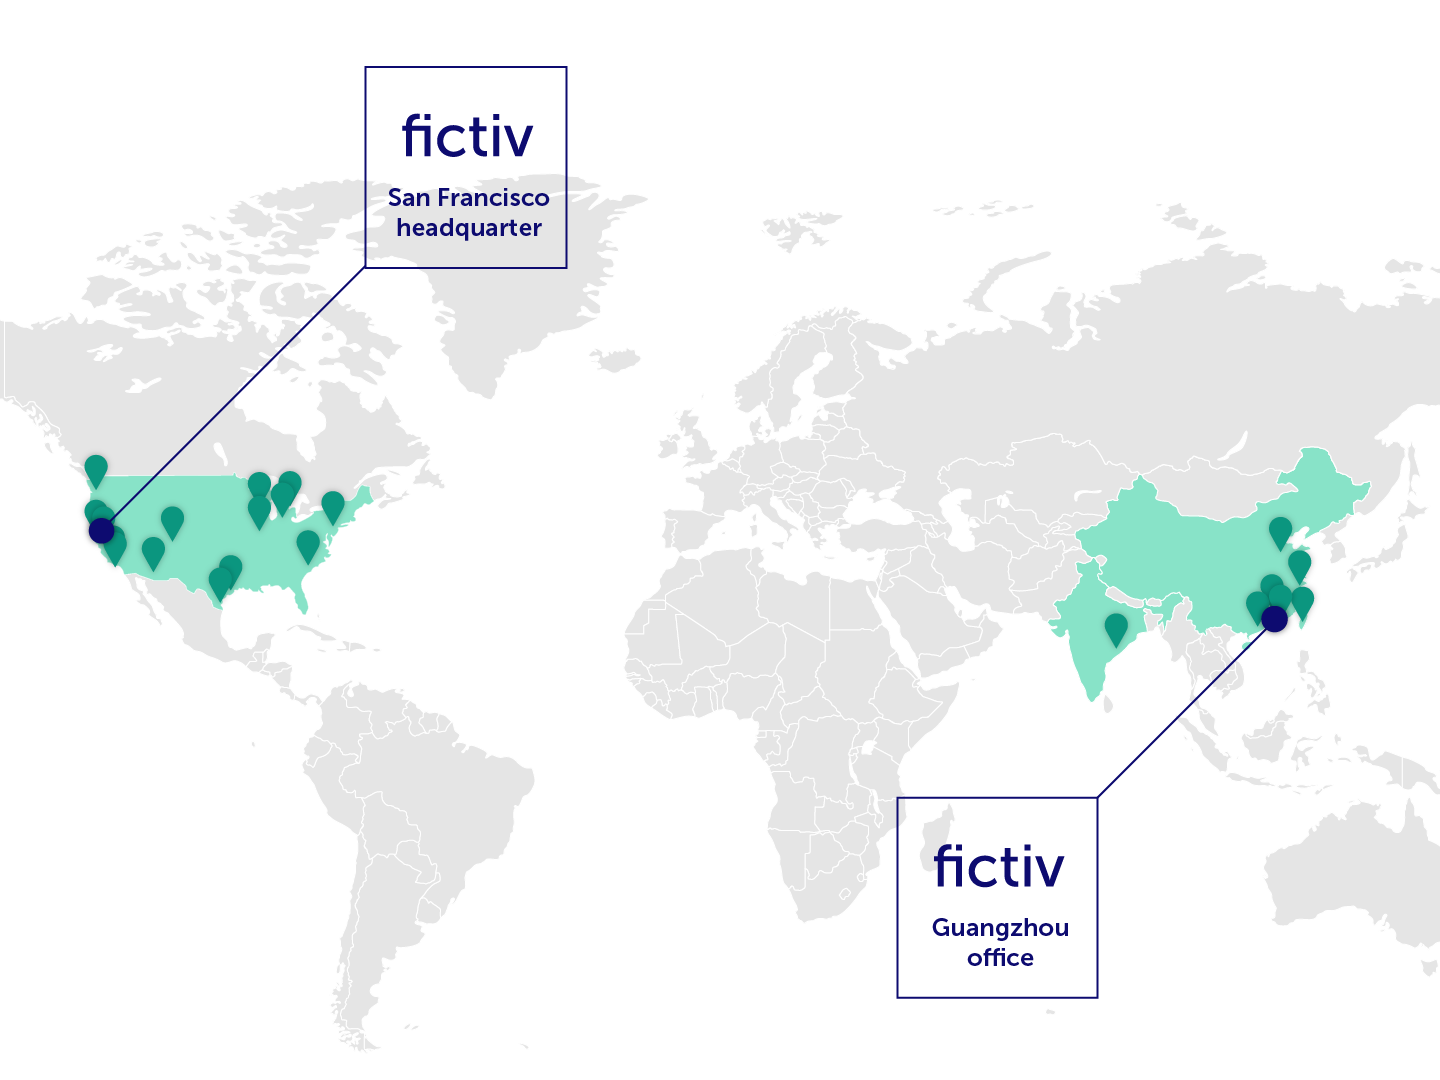 fictiv reliable on demand capacity